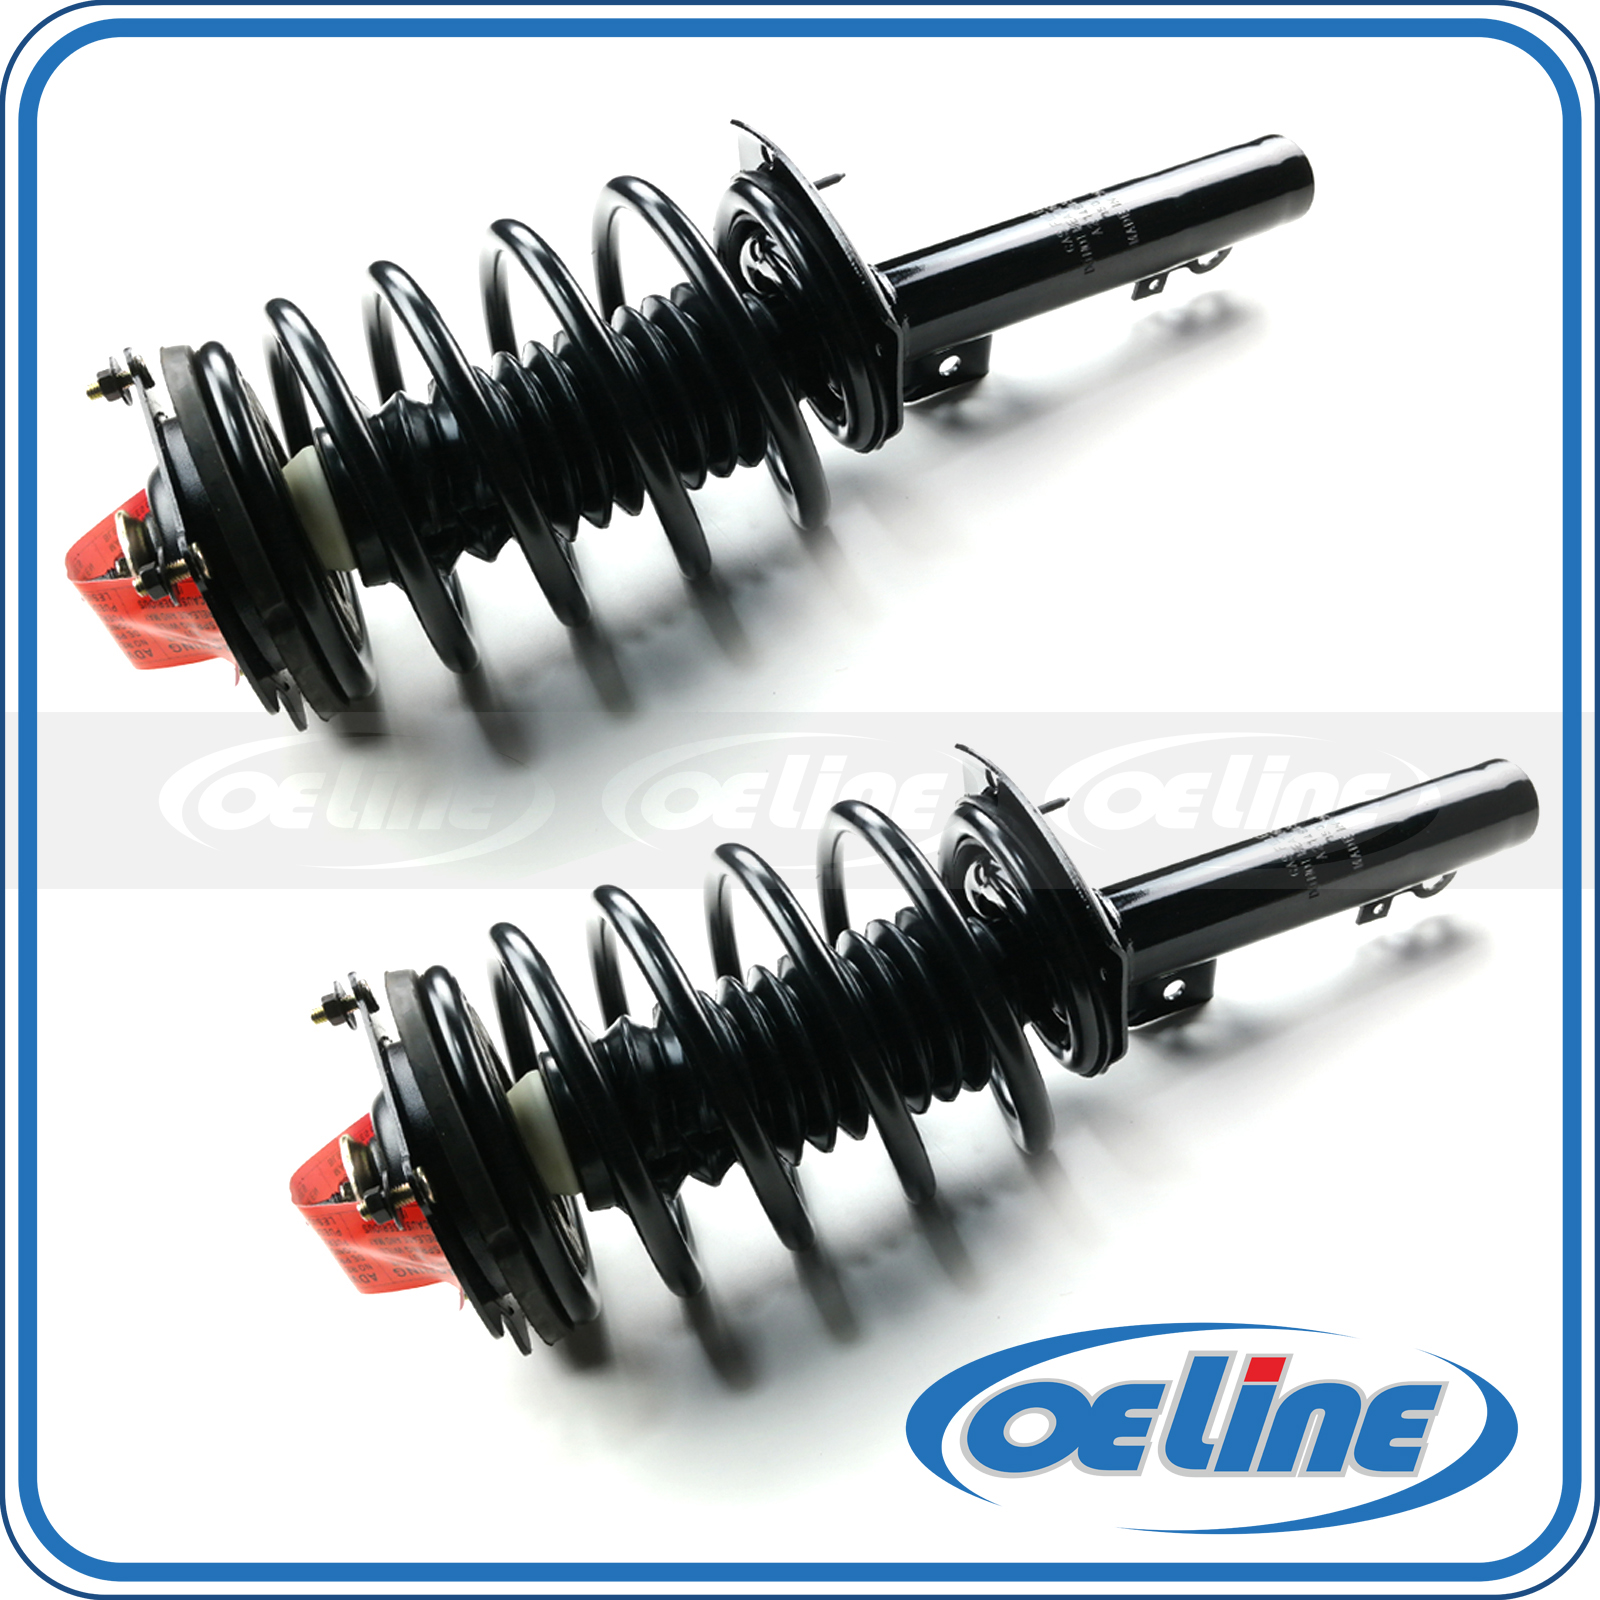 Pair Front Quick Complete Strut Assembly for 171615 1996-2007 Ford Taurus